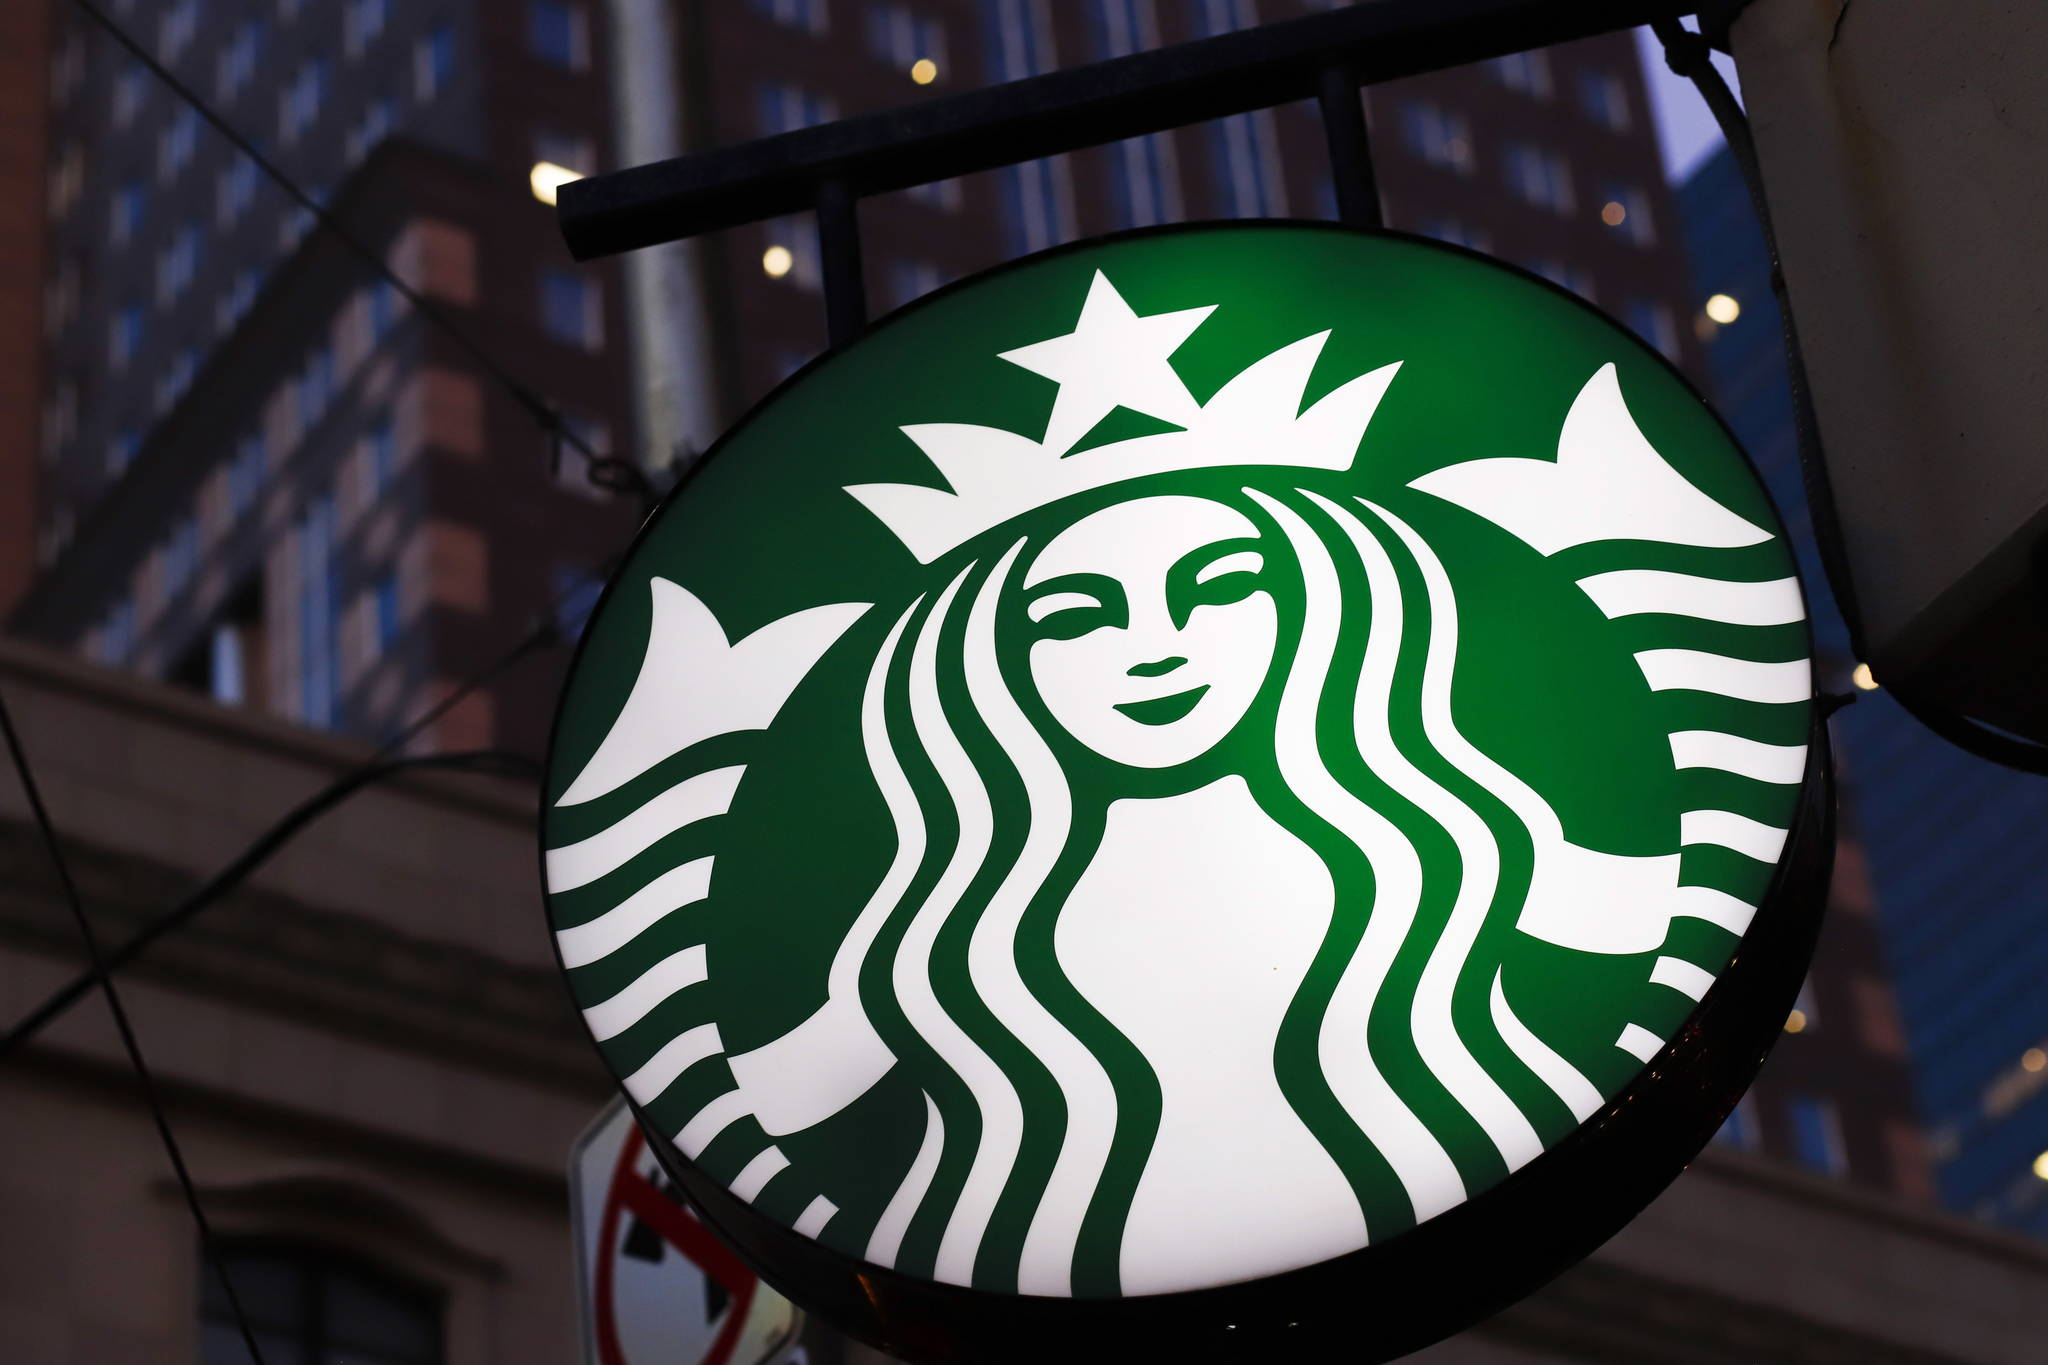 This June 26, 2019, photo shows a Starbucks sign outside a Starbucks coffee shop in downtown Pittsburgh. Starbucks customers in Canada will soon be able to down fake meat with their Frappuccinos. The coffee chain said Wednesday, Feb. 26, 2020, that it will soon start selling a sandwich featuring a meat-free patty from Beyond Meat, the El Segundo, California-based company whose patties are already found at other fast food chains. (AP Photo/Gene J. Puskar)